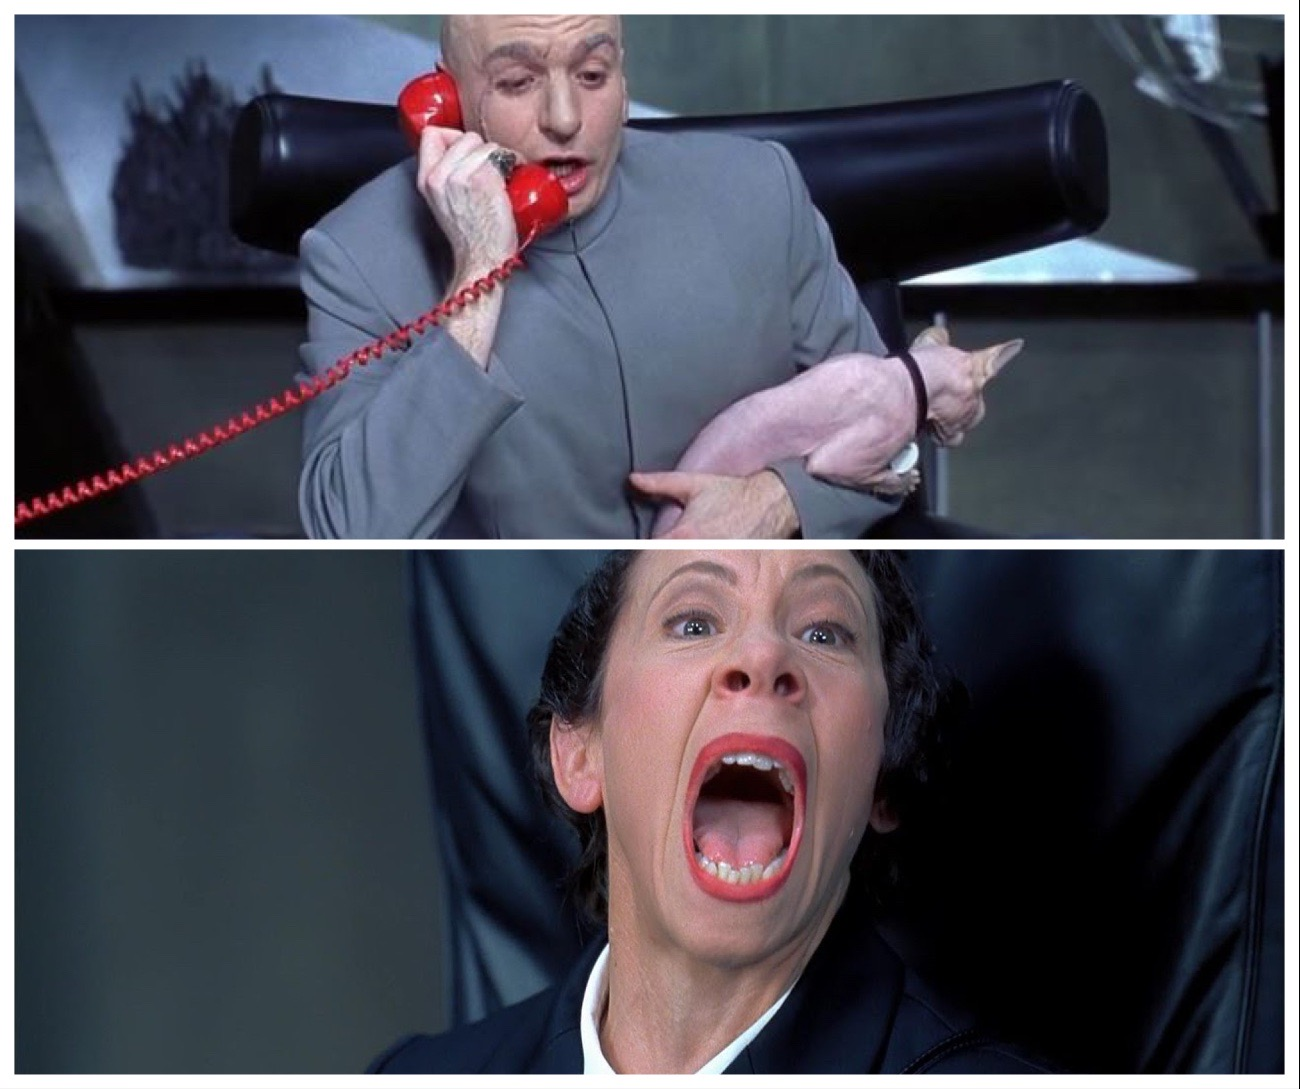 Dr. Evil, a fictional character in the Austin Powers series. He was the main antagonist and Austin Powers'snemesis